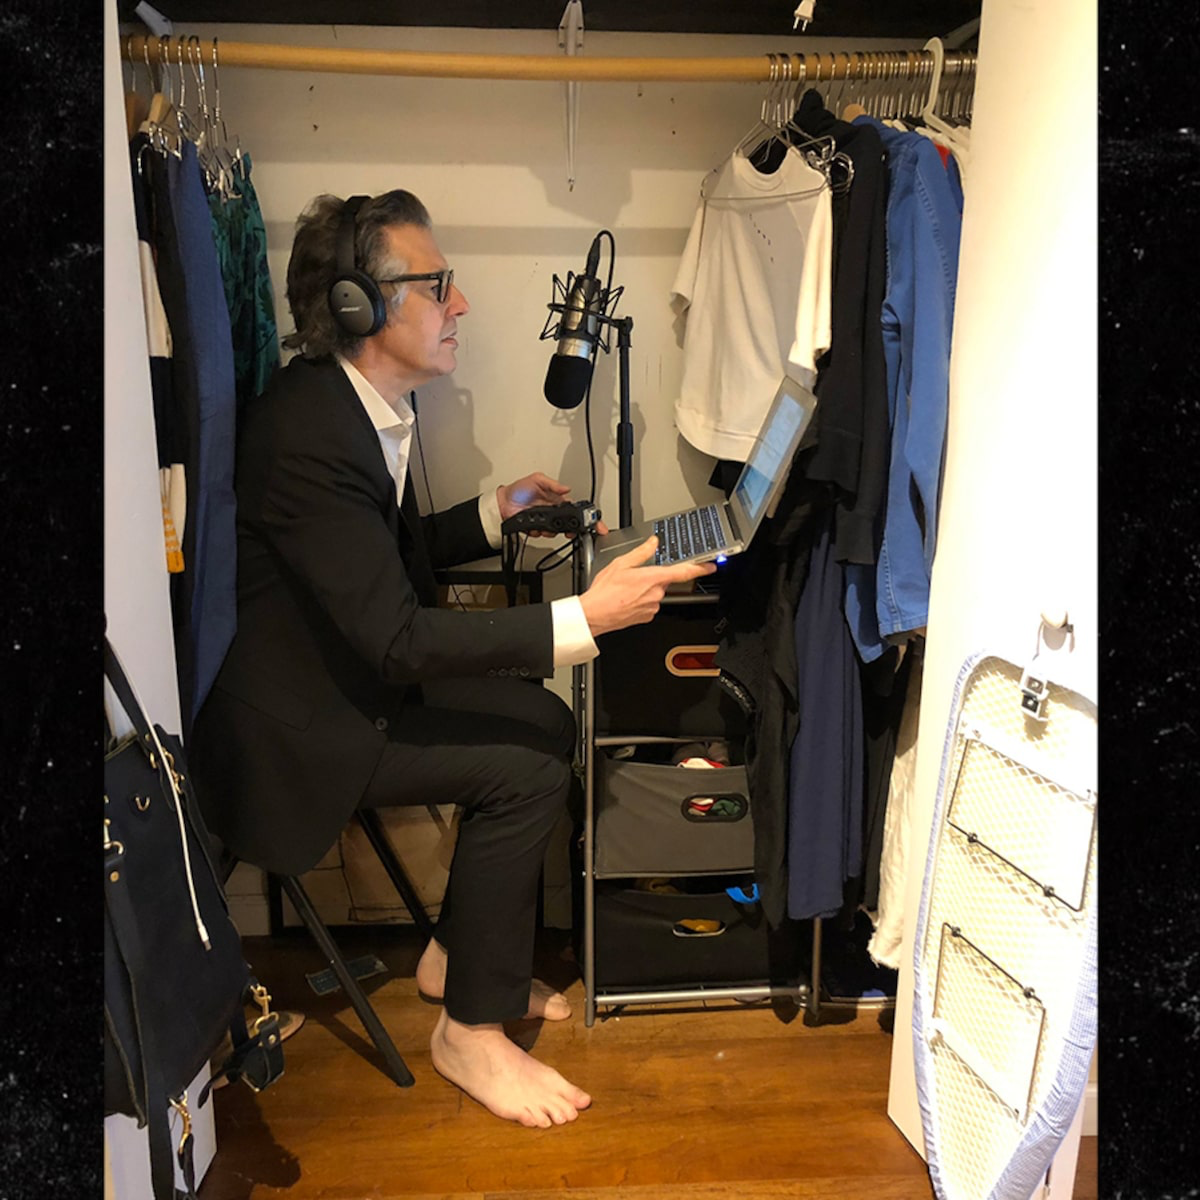 NPR's Ira Glass recording his narration at home. Via Twitter.